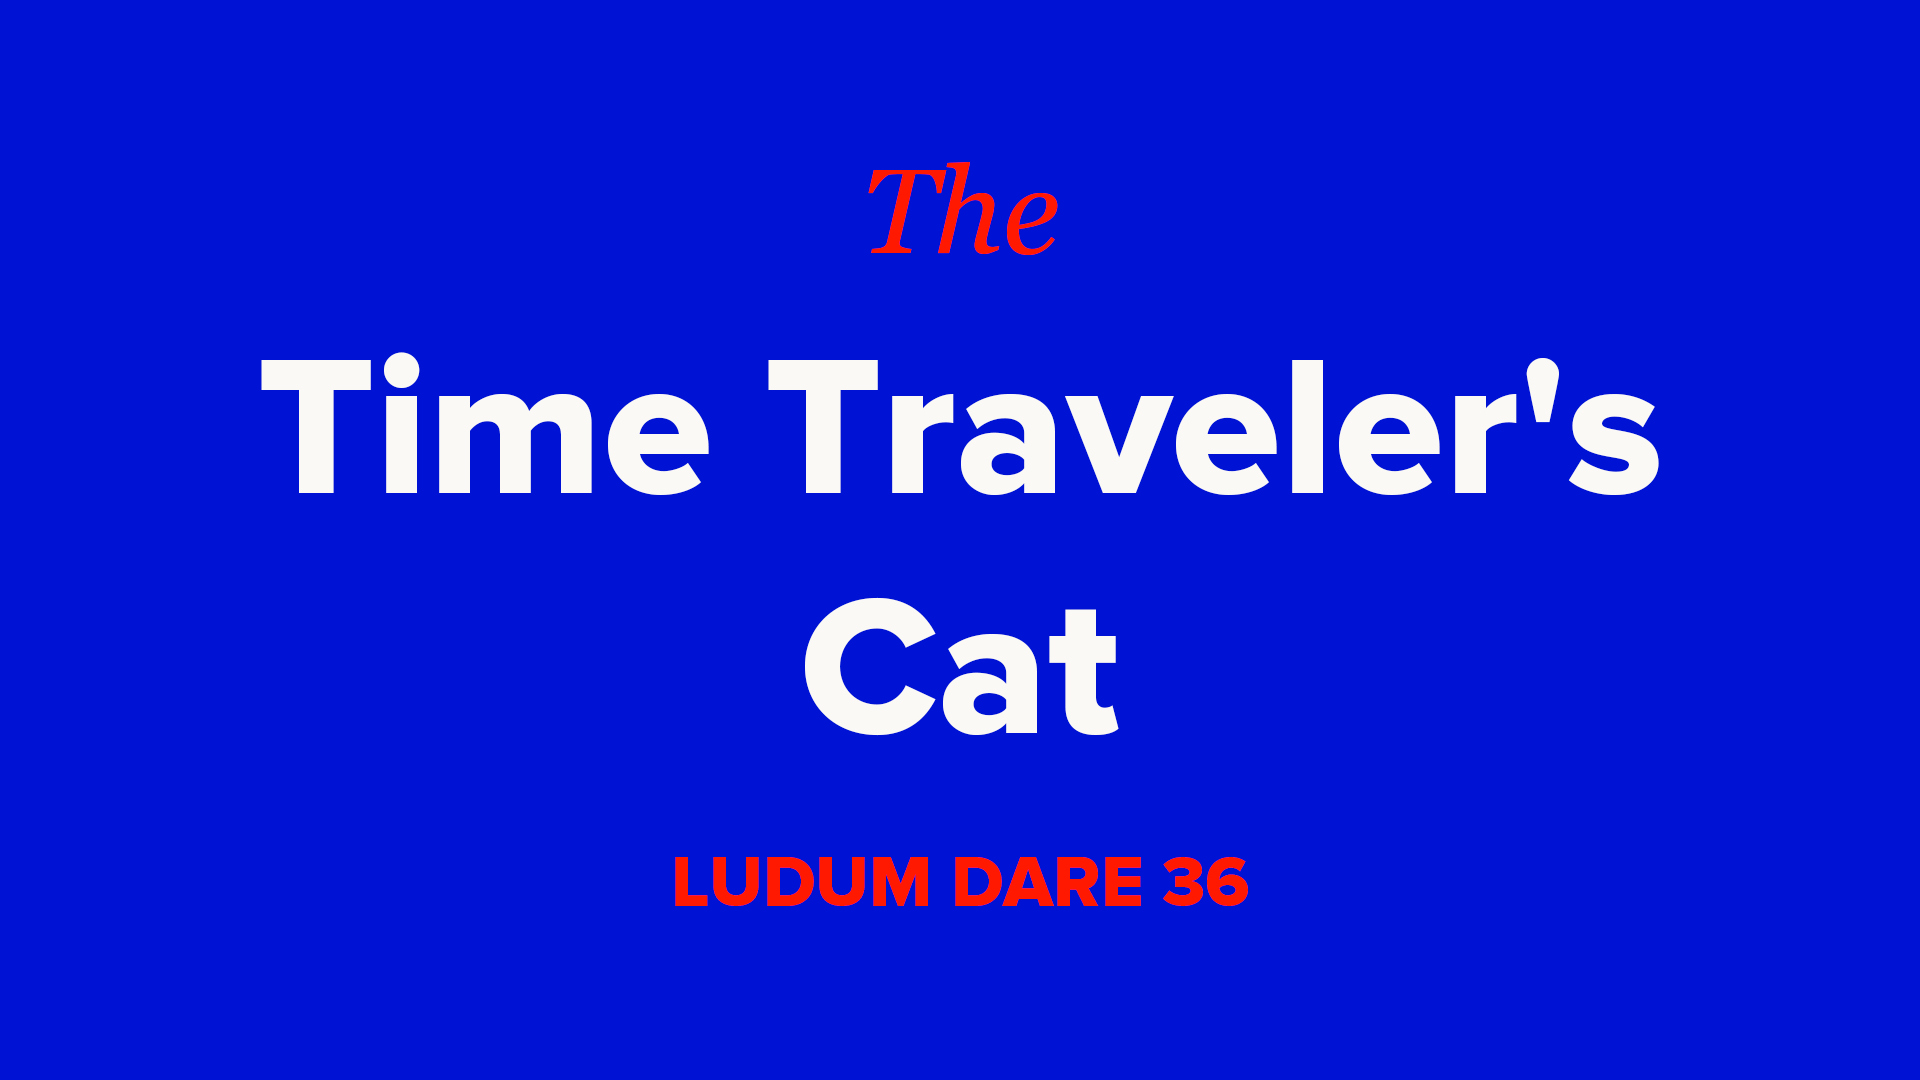 The Time Traveler's Cat